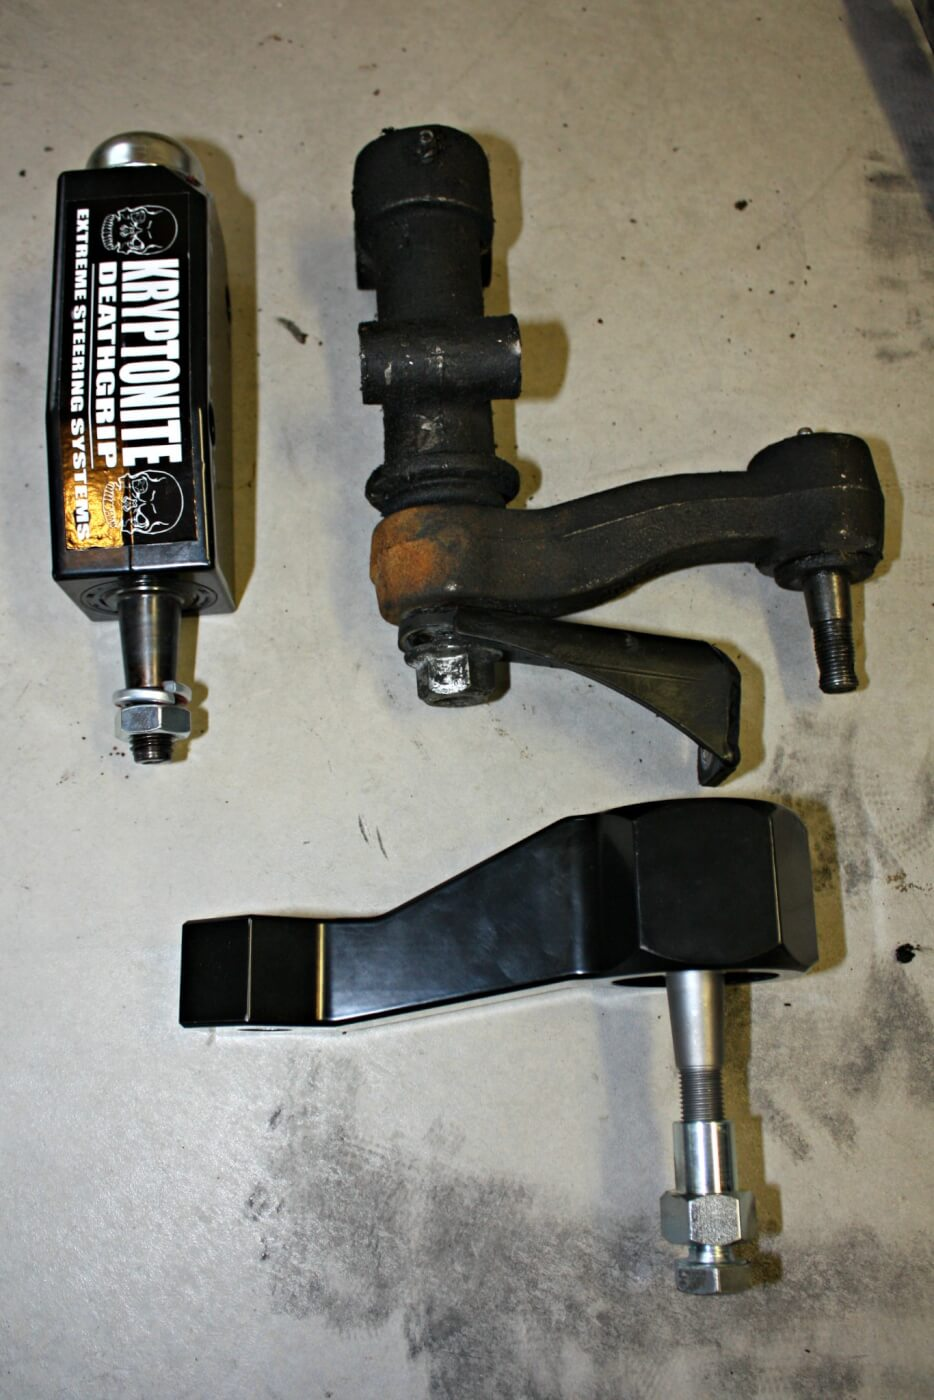 12. The new Death Grip idler arm uses a sealed double roller bearing design for prolonged life and durability. When paired with the support gusset that will be bolted to the original bracket and welded to the truck's frame, this system should remove any flex or movement from the idler arm assembly and ensure positive steering input.